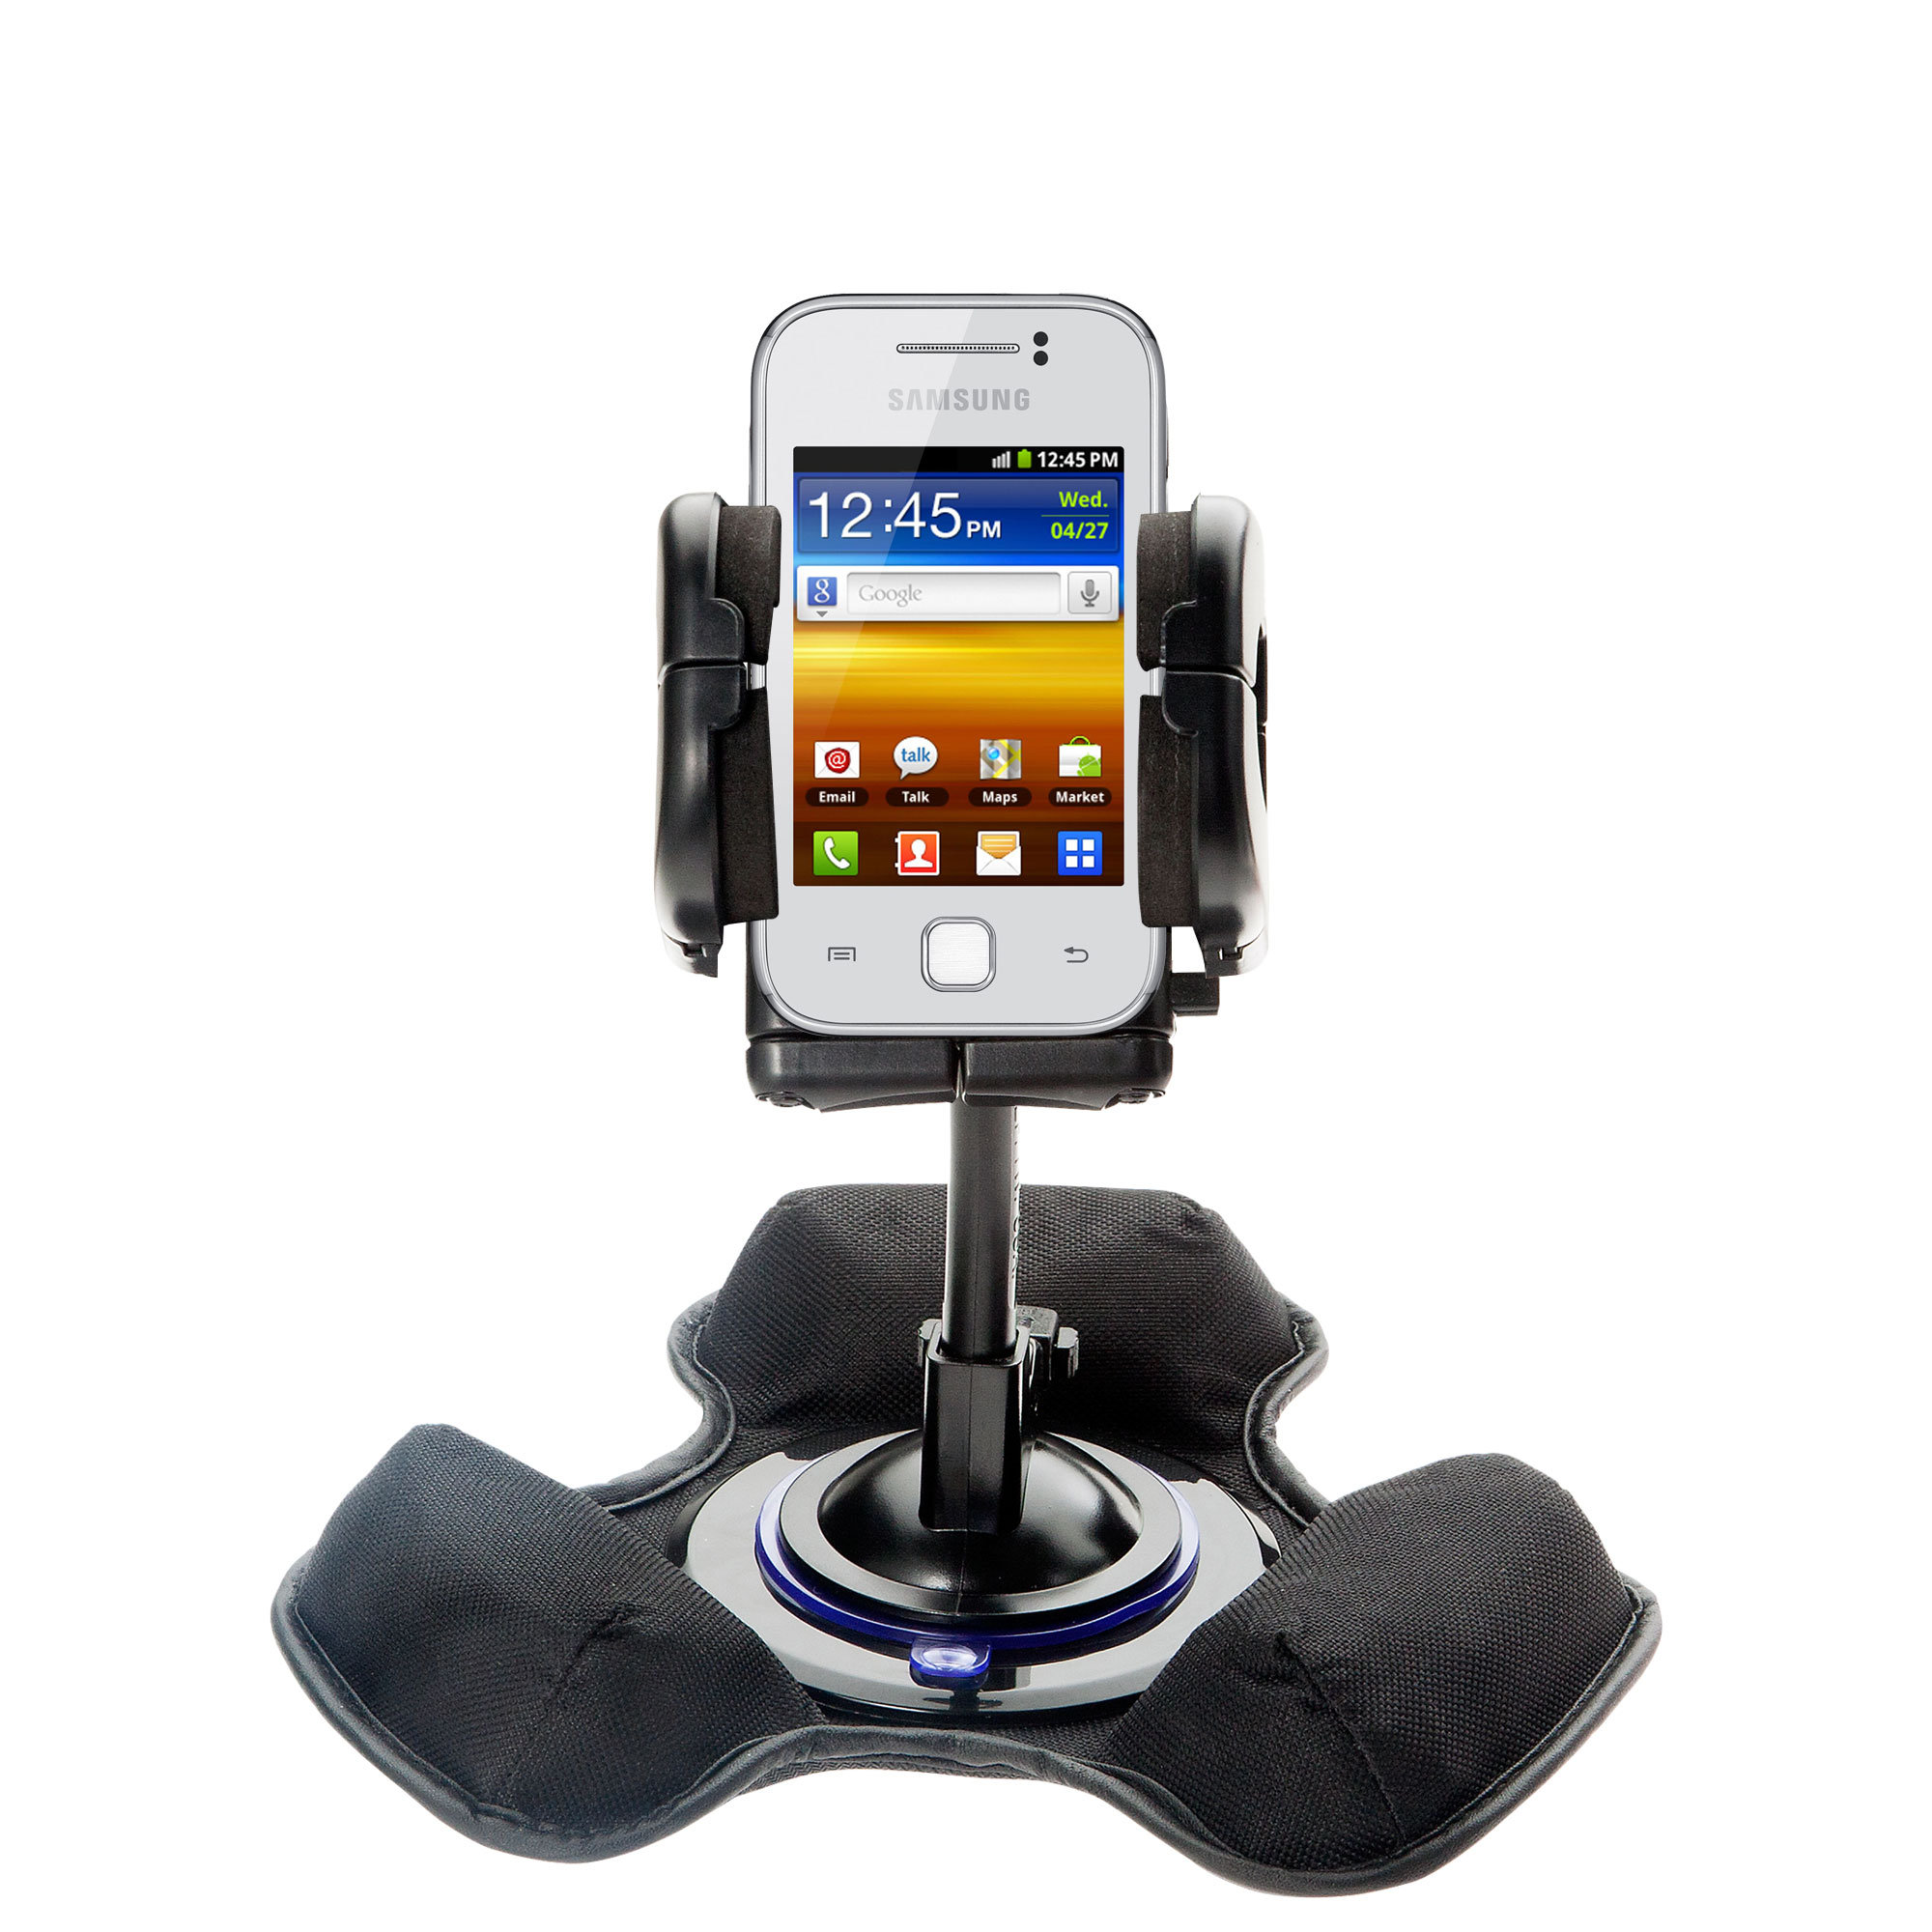 Car / Truck Vehicle Holder Mounting System for Samsung Galaxy Y Includes Unique Flexible Windshield Suction and Universal Dashboard Mount Options